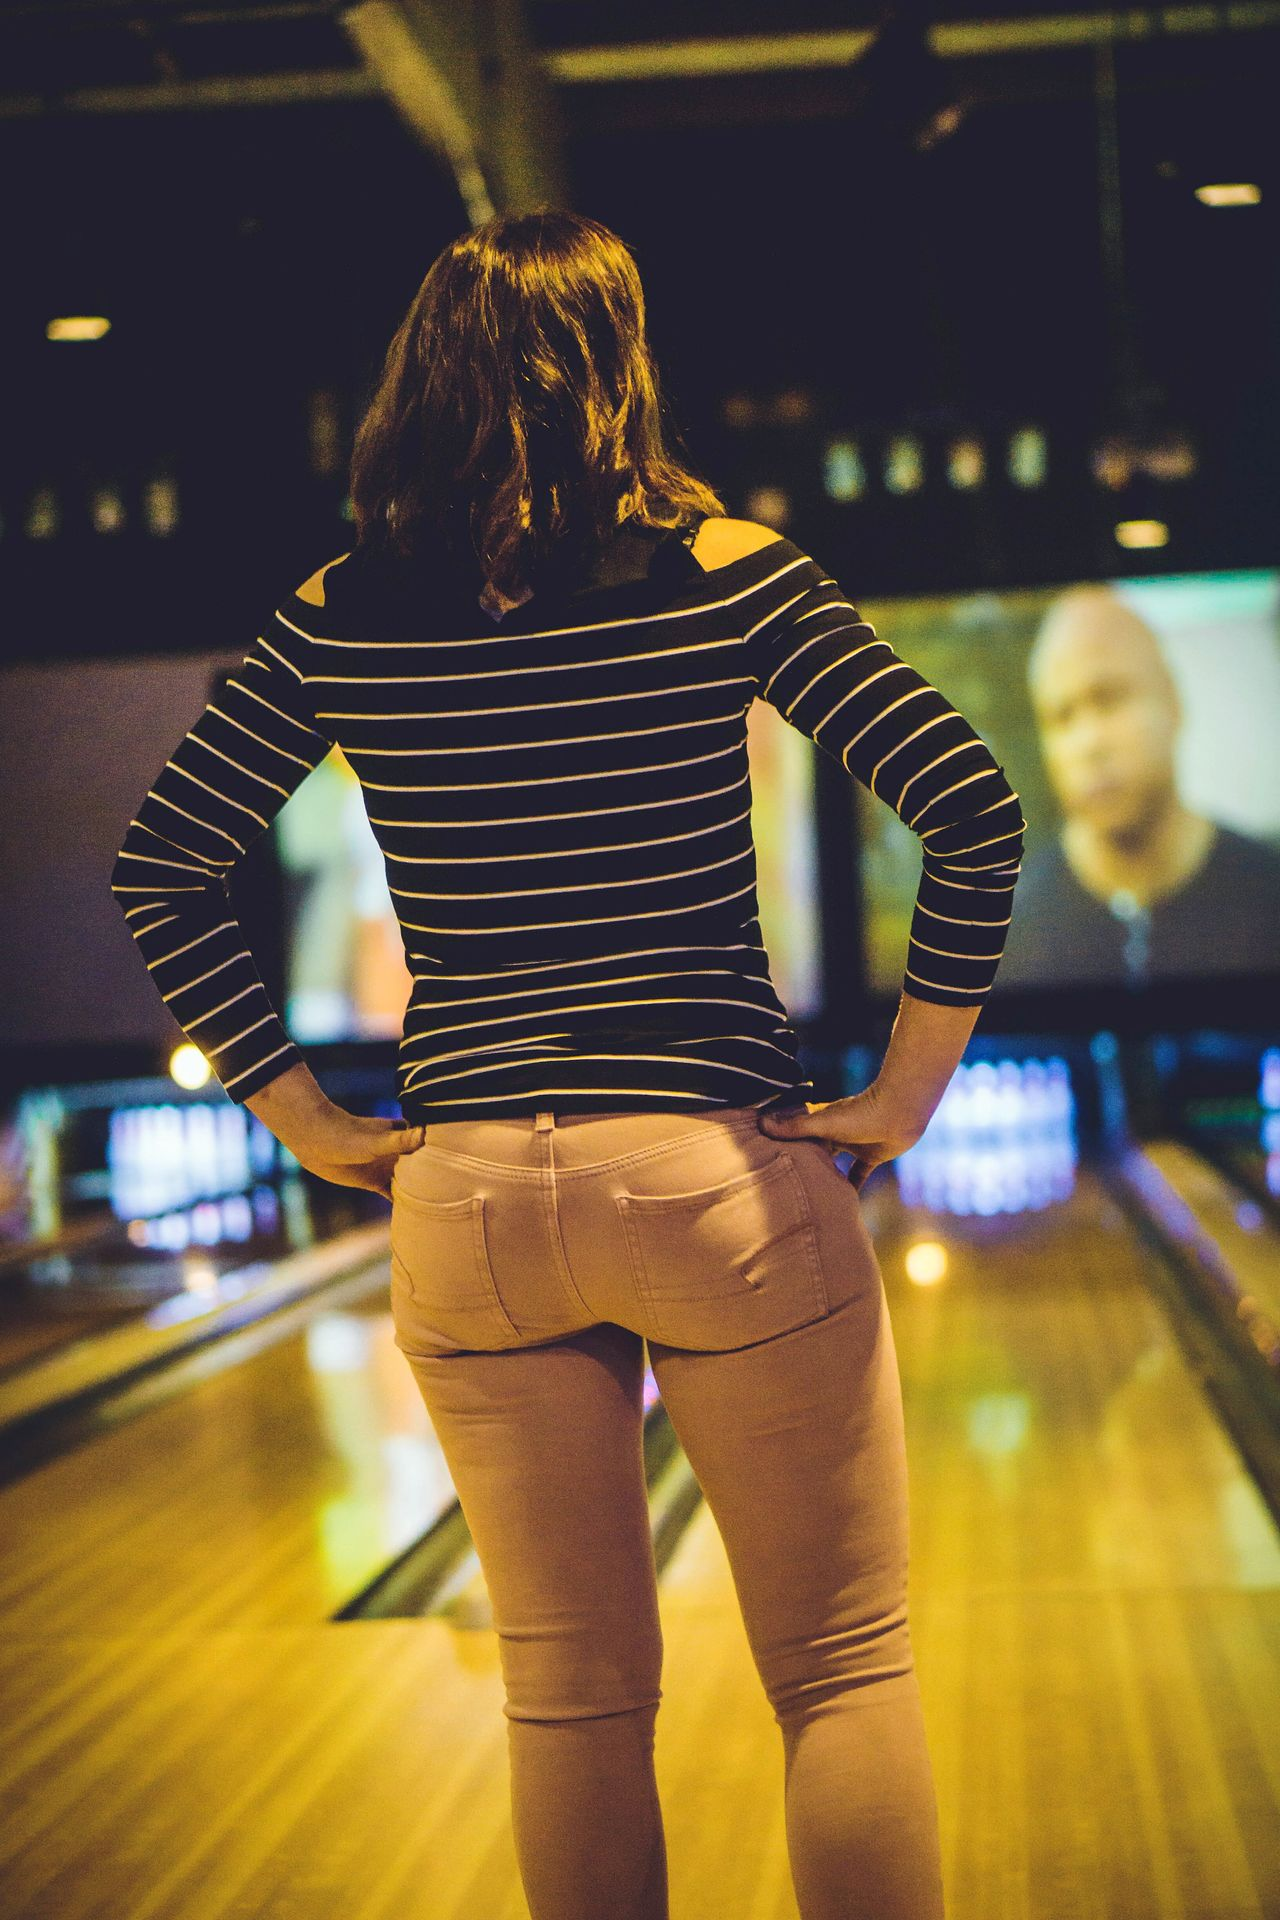 Front View Adults Only One Person People Adult Technology Night Young Adult Bowling Bowling Alley